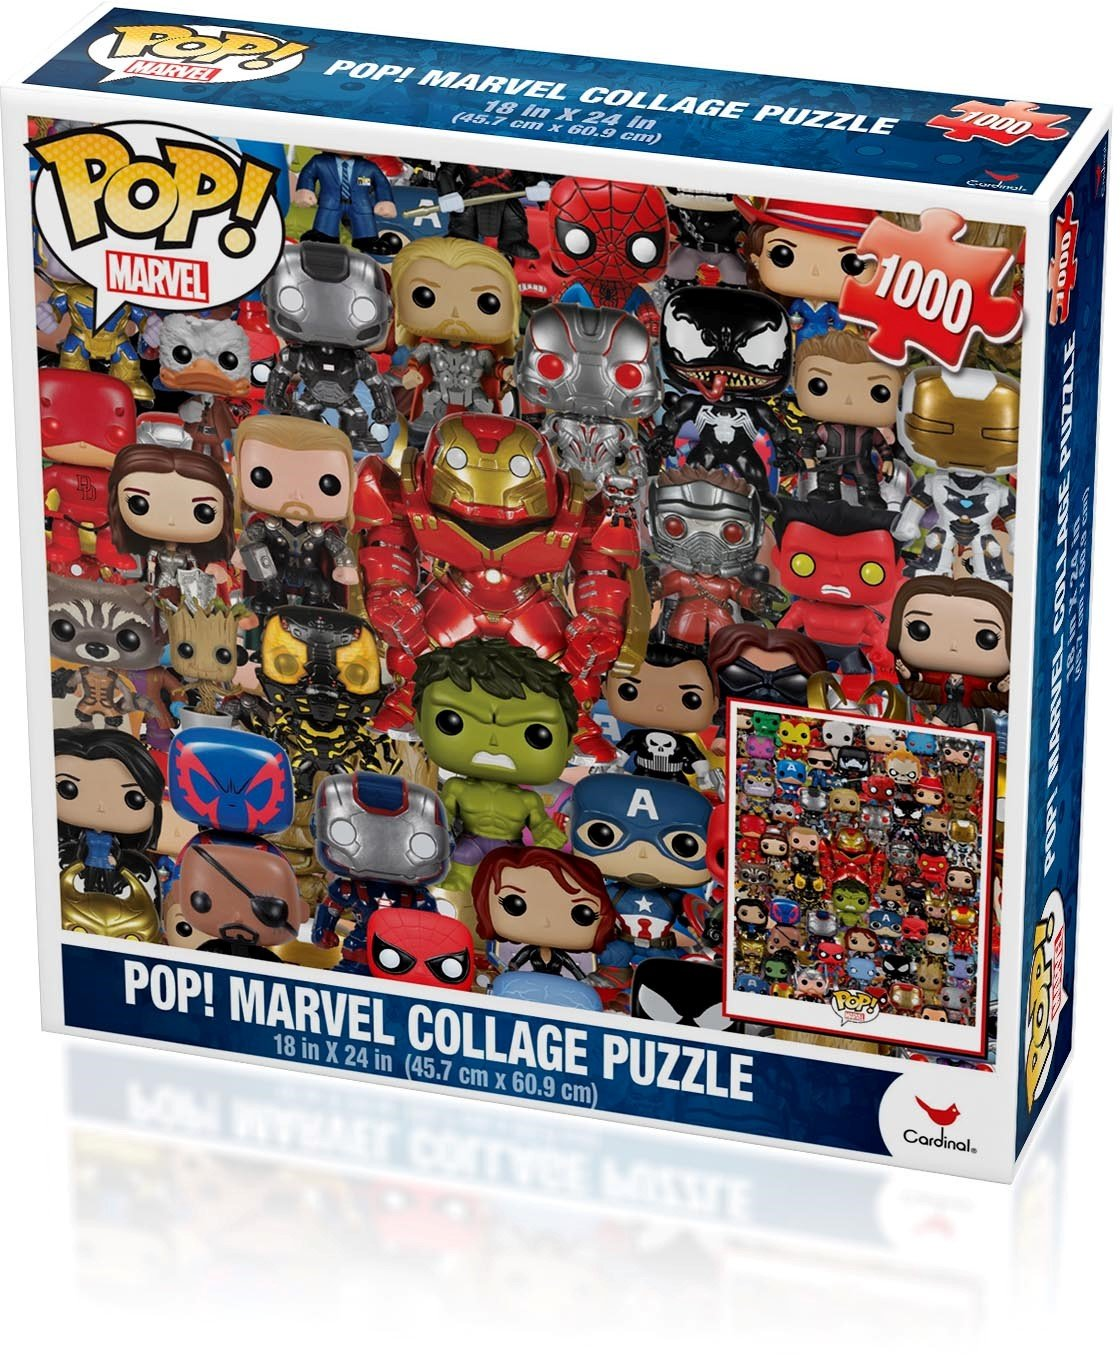 Marvel Funko Pop Puzzle (1000-Piece)